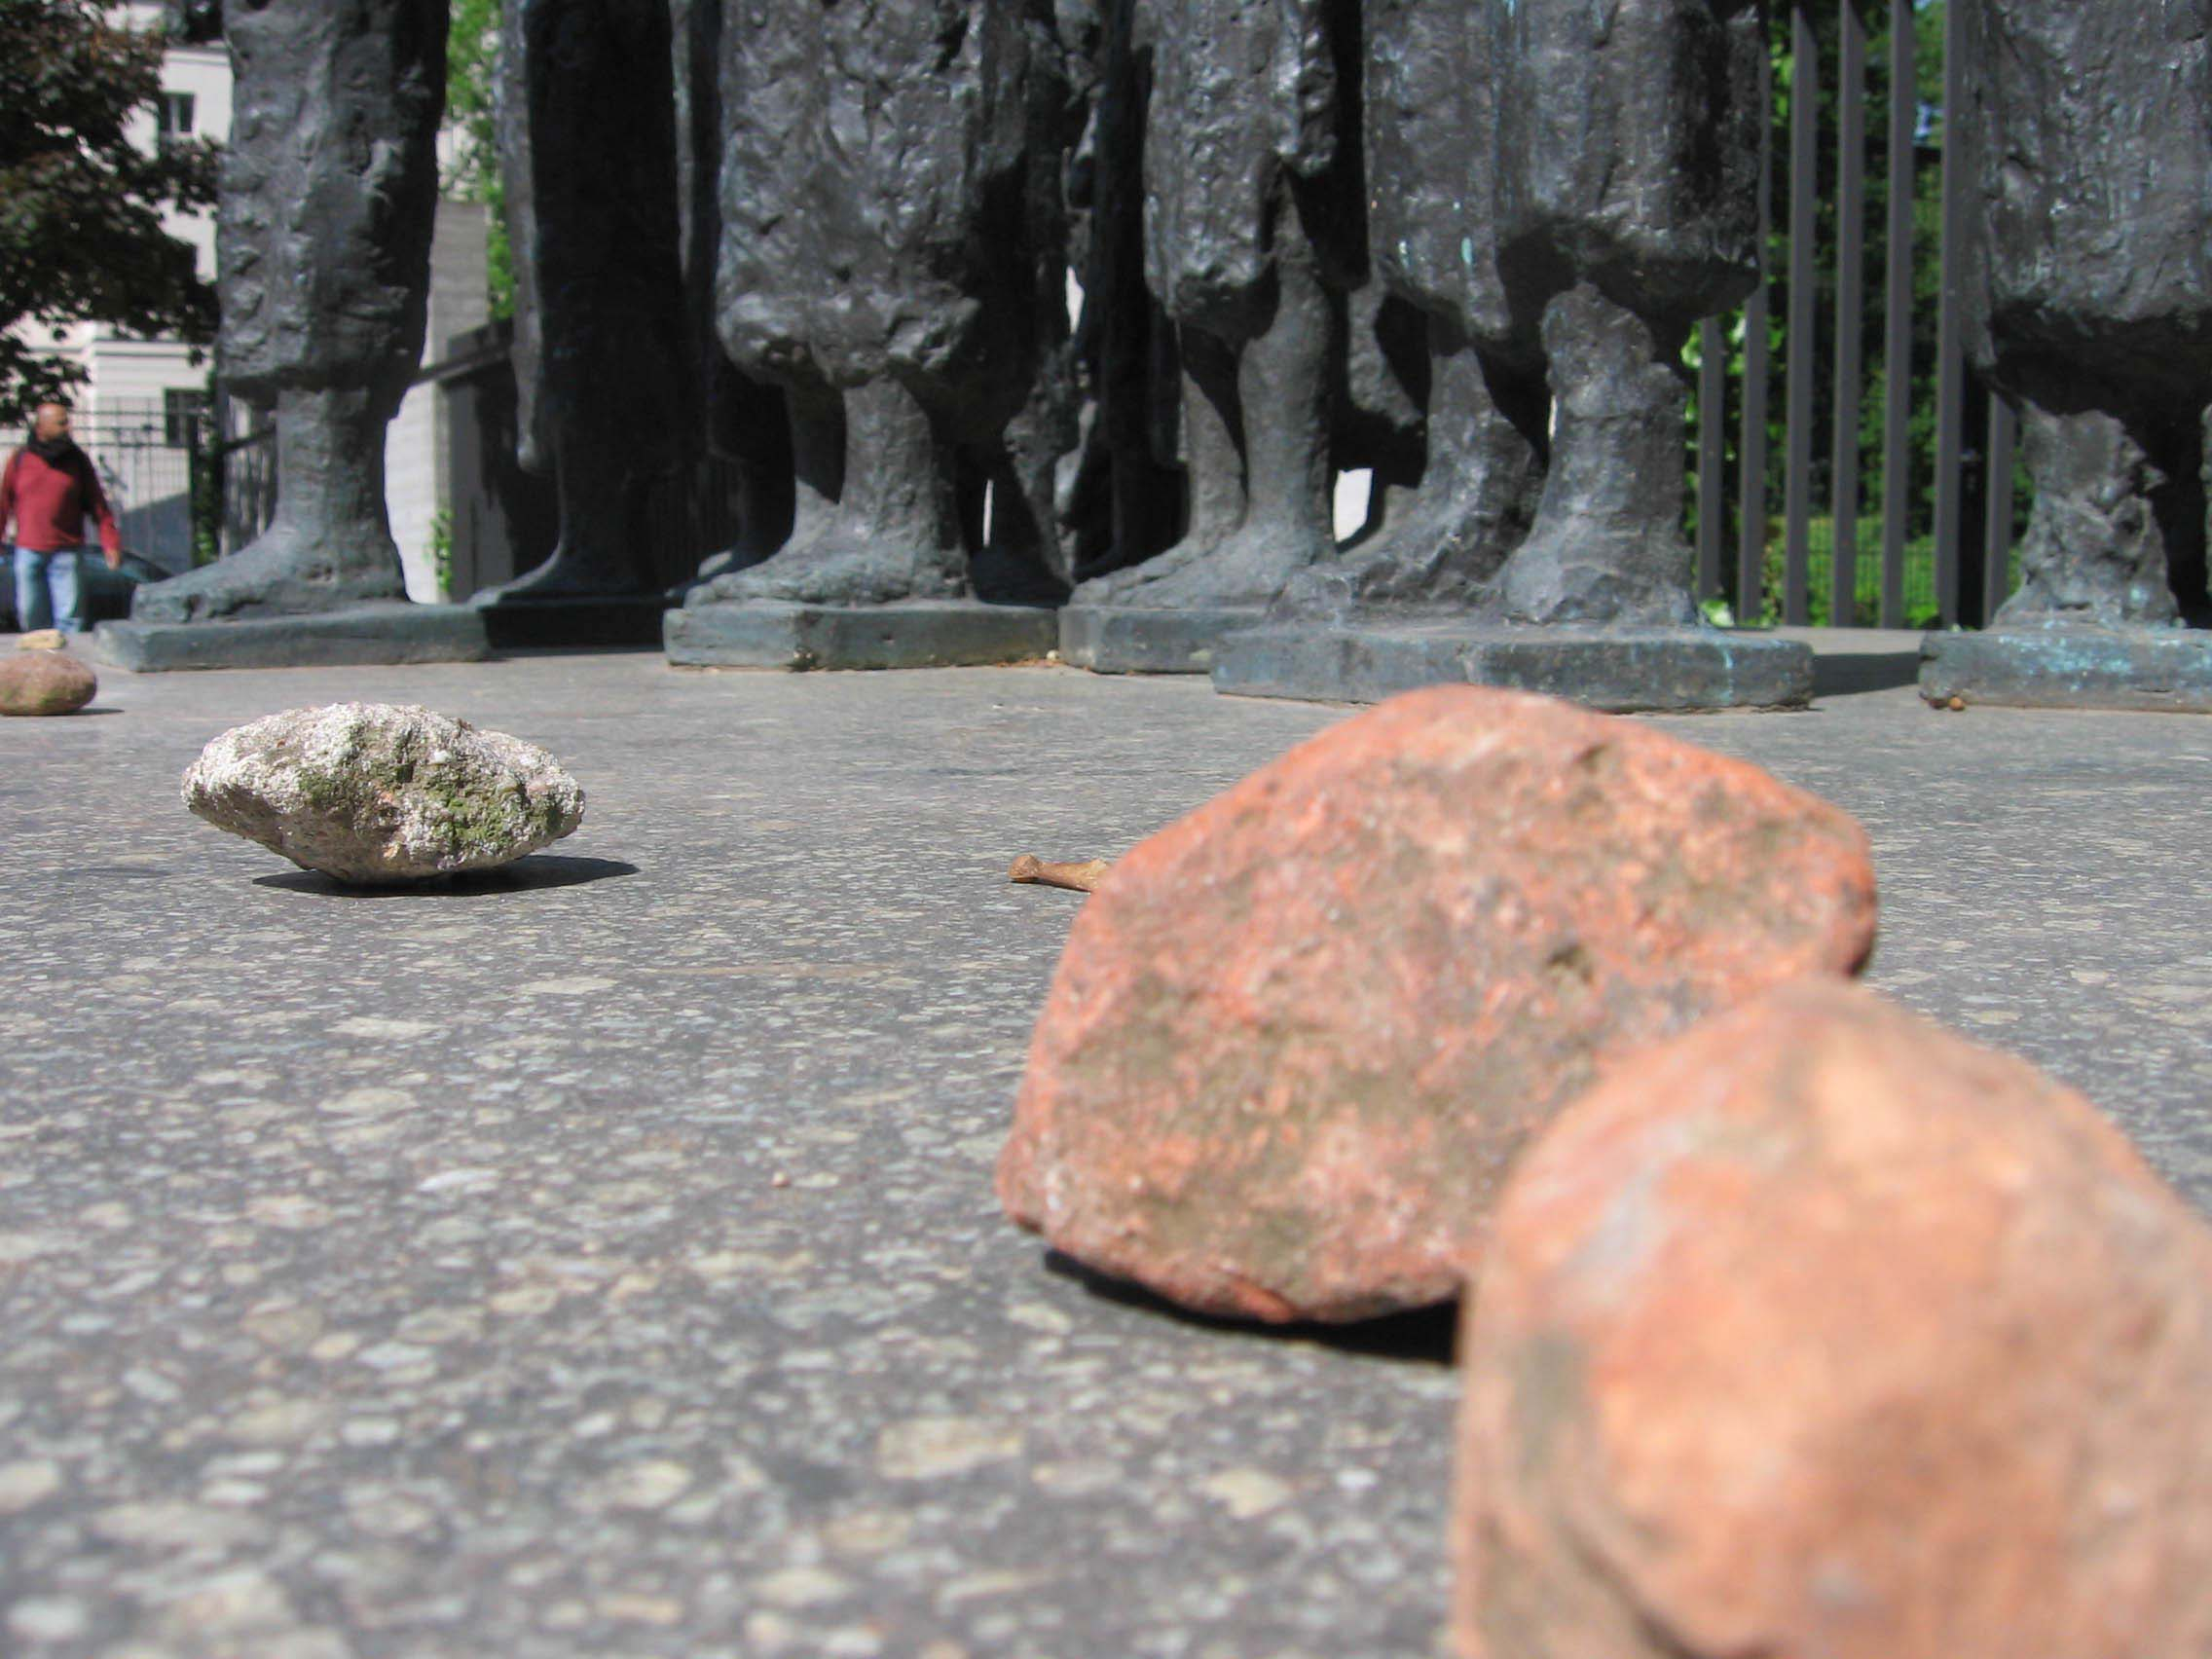 Respect is paid to the known and unknown Jewish victims of Nazism. - by SL Wong